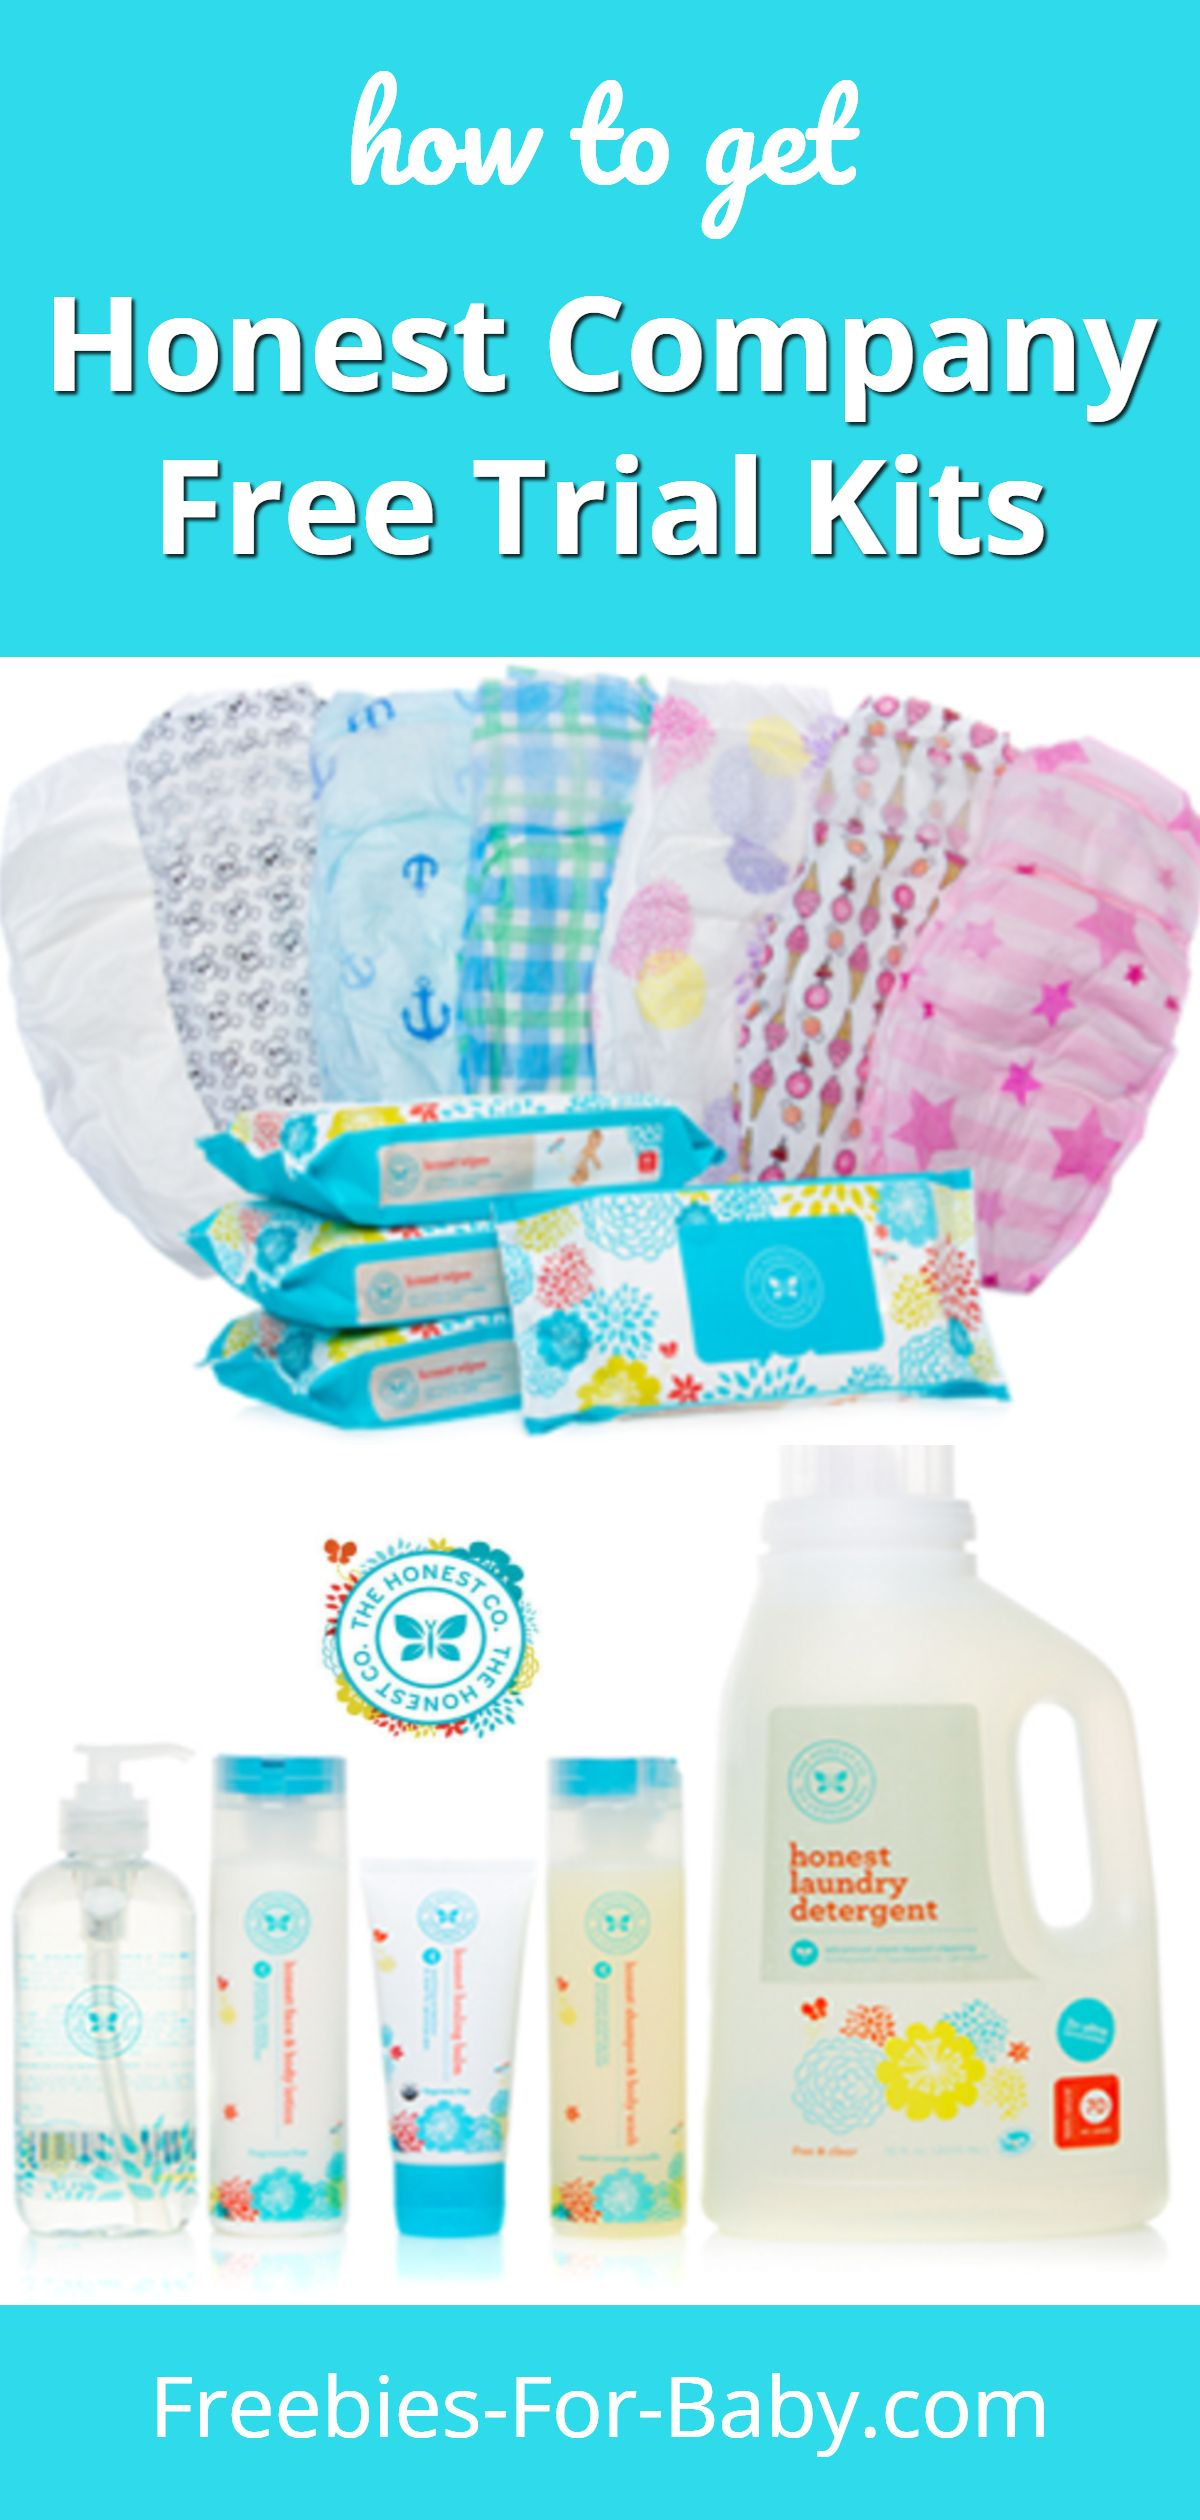 Honest Company Diapers - get free trial kits of Honest Company diapers, plus free Honest Co baby care and household products. #HonestCompany #HonestCompanyDiapers #HonestDiapers #HonestCo #HonestCoBaby